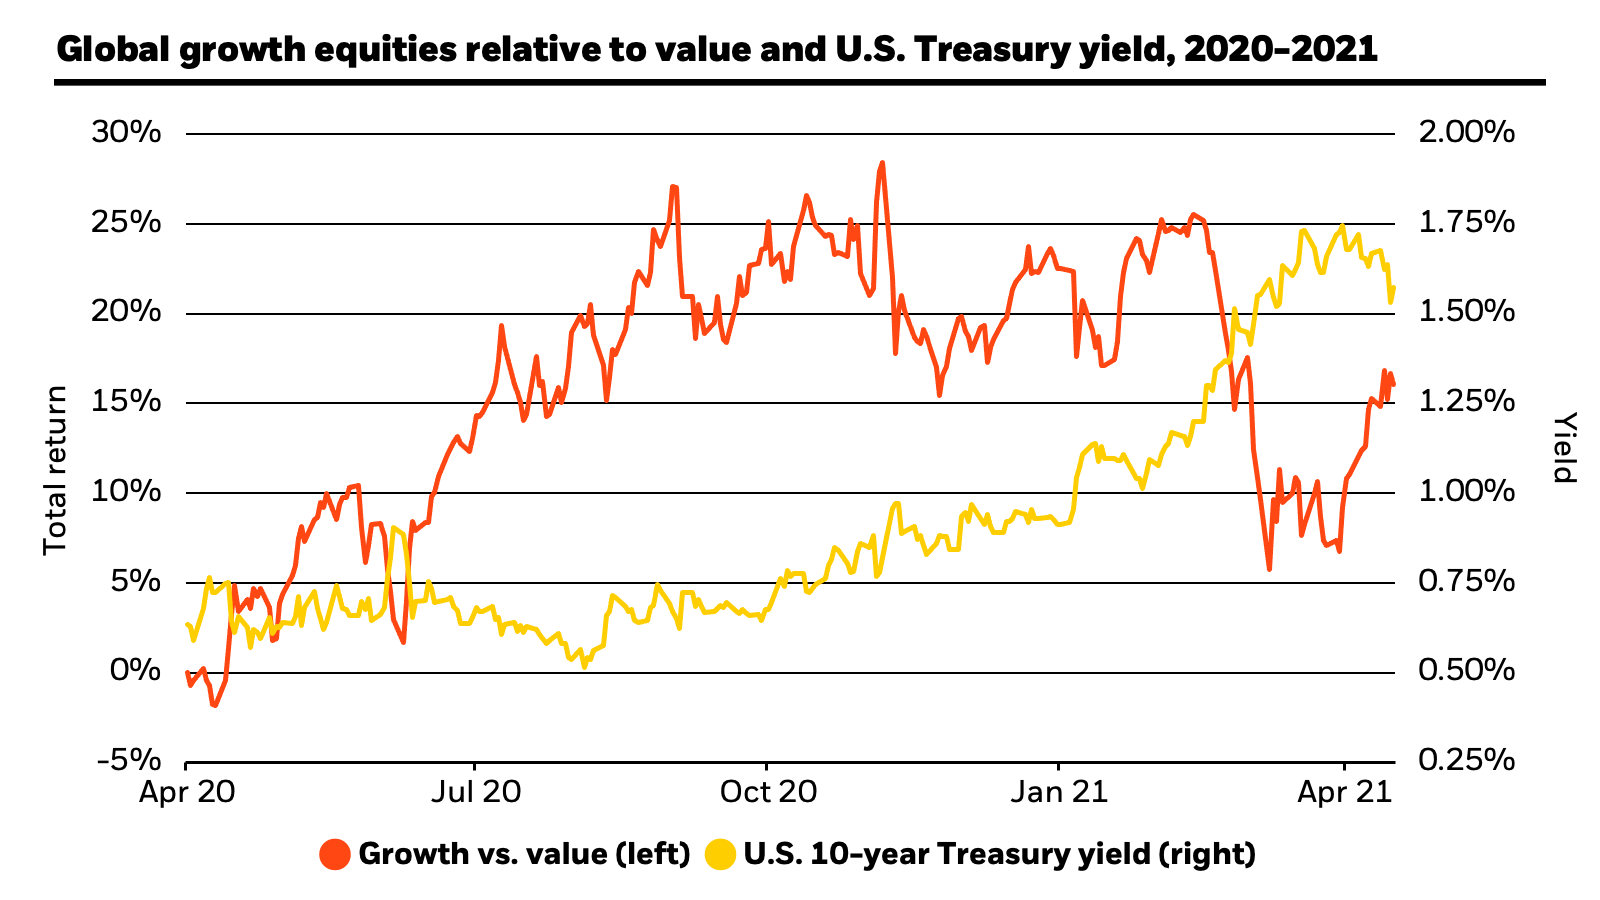 Global growth equities relative to value and the U.S. Treasury yield: This chart shows the sharp reversal in global growth equities relative to value and U.S. Treasuries. Total return at the end-April 2021 was just above 16% and the U.S. 10-year Treasury yield came down to roughly 1.5%.